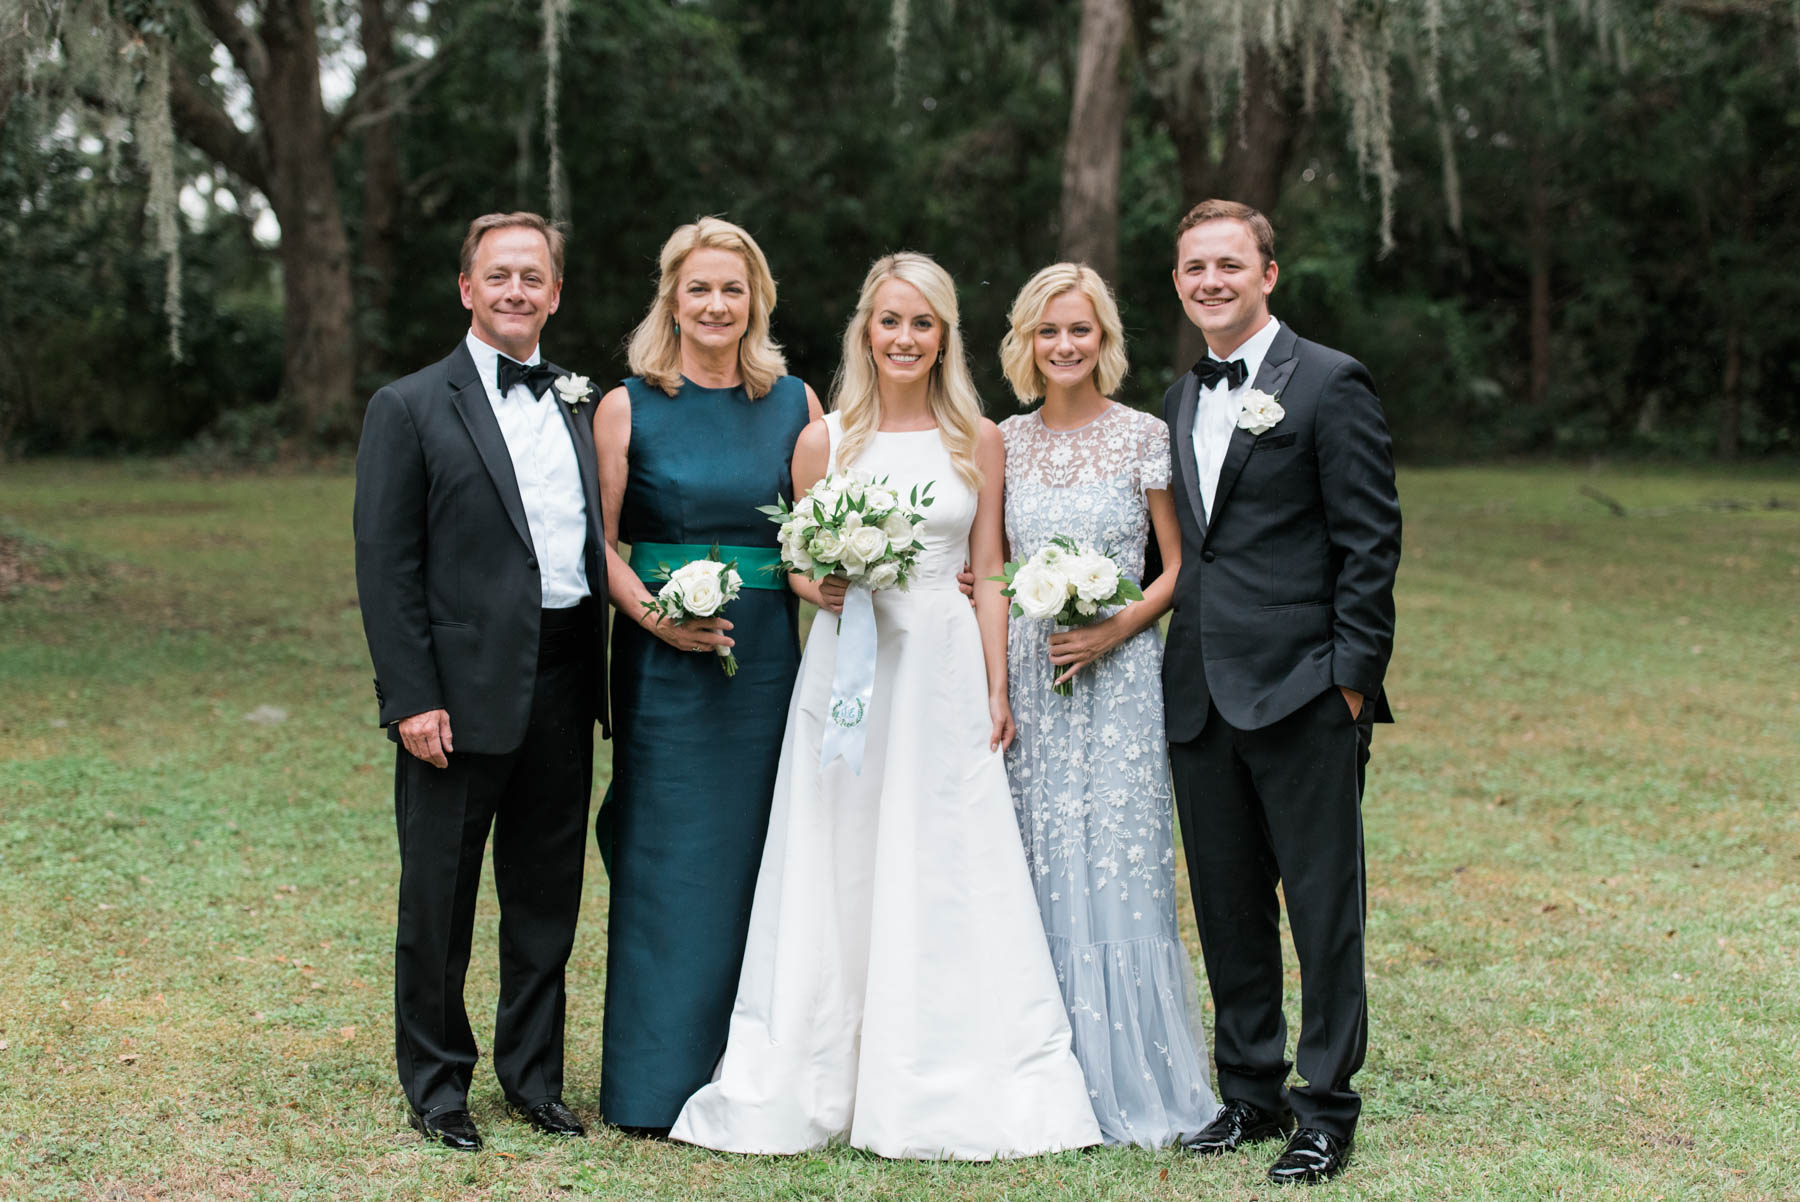 Our Family And Bridal Party On Our Wedding Day